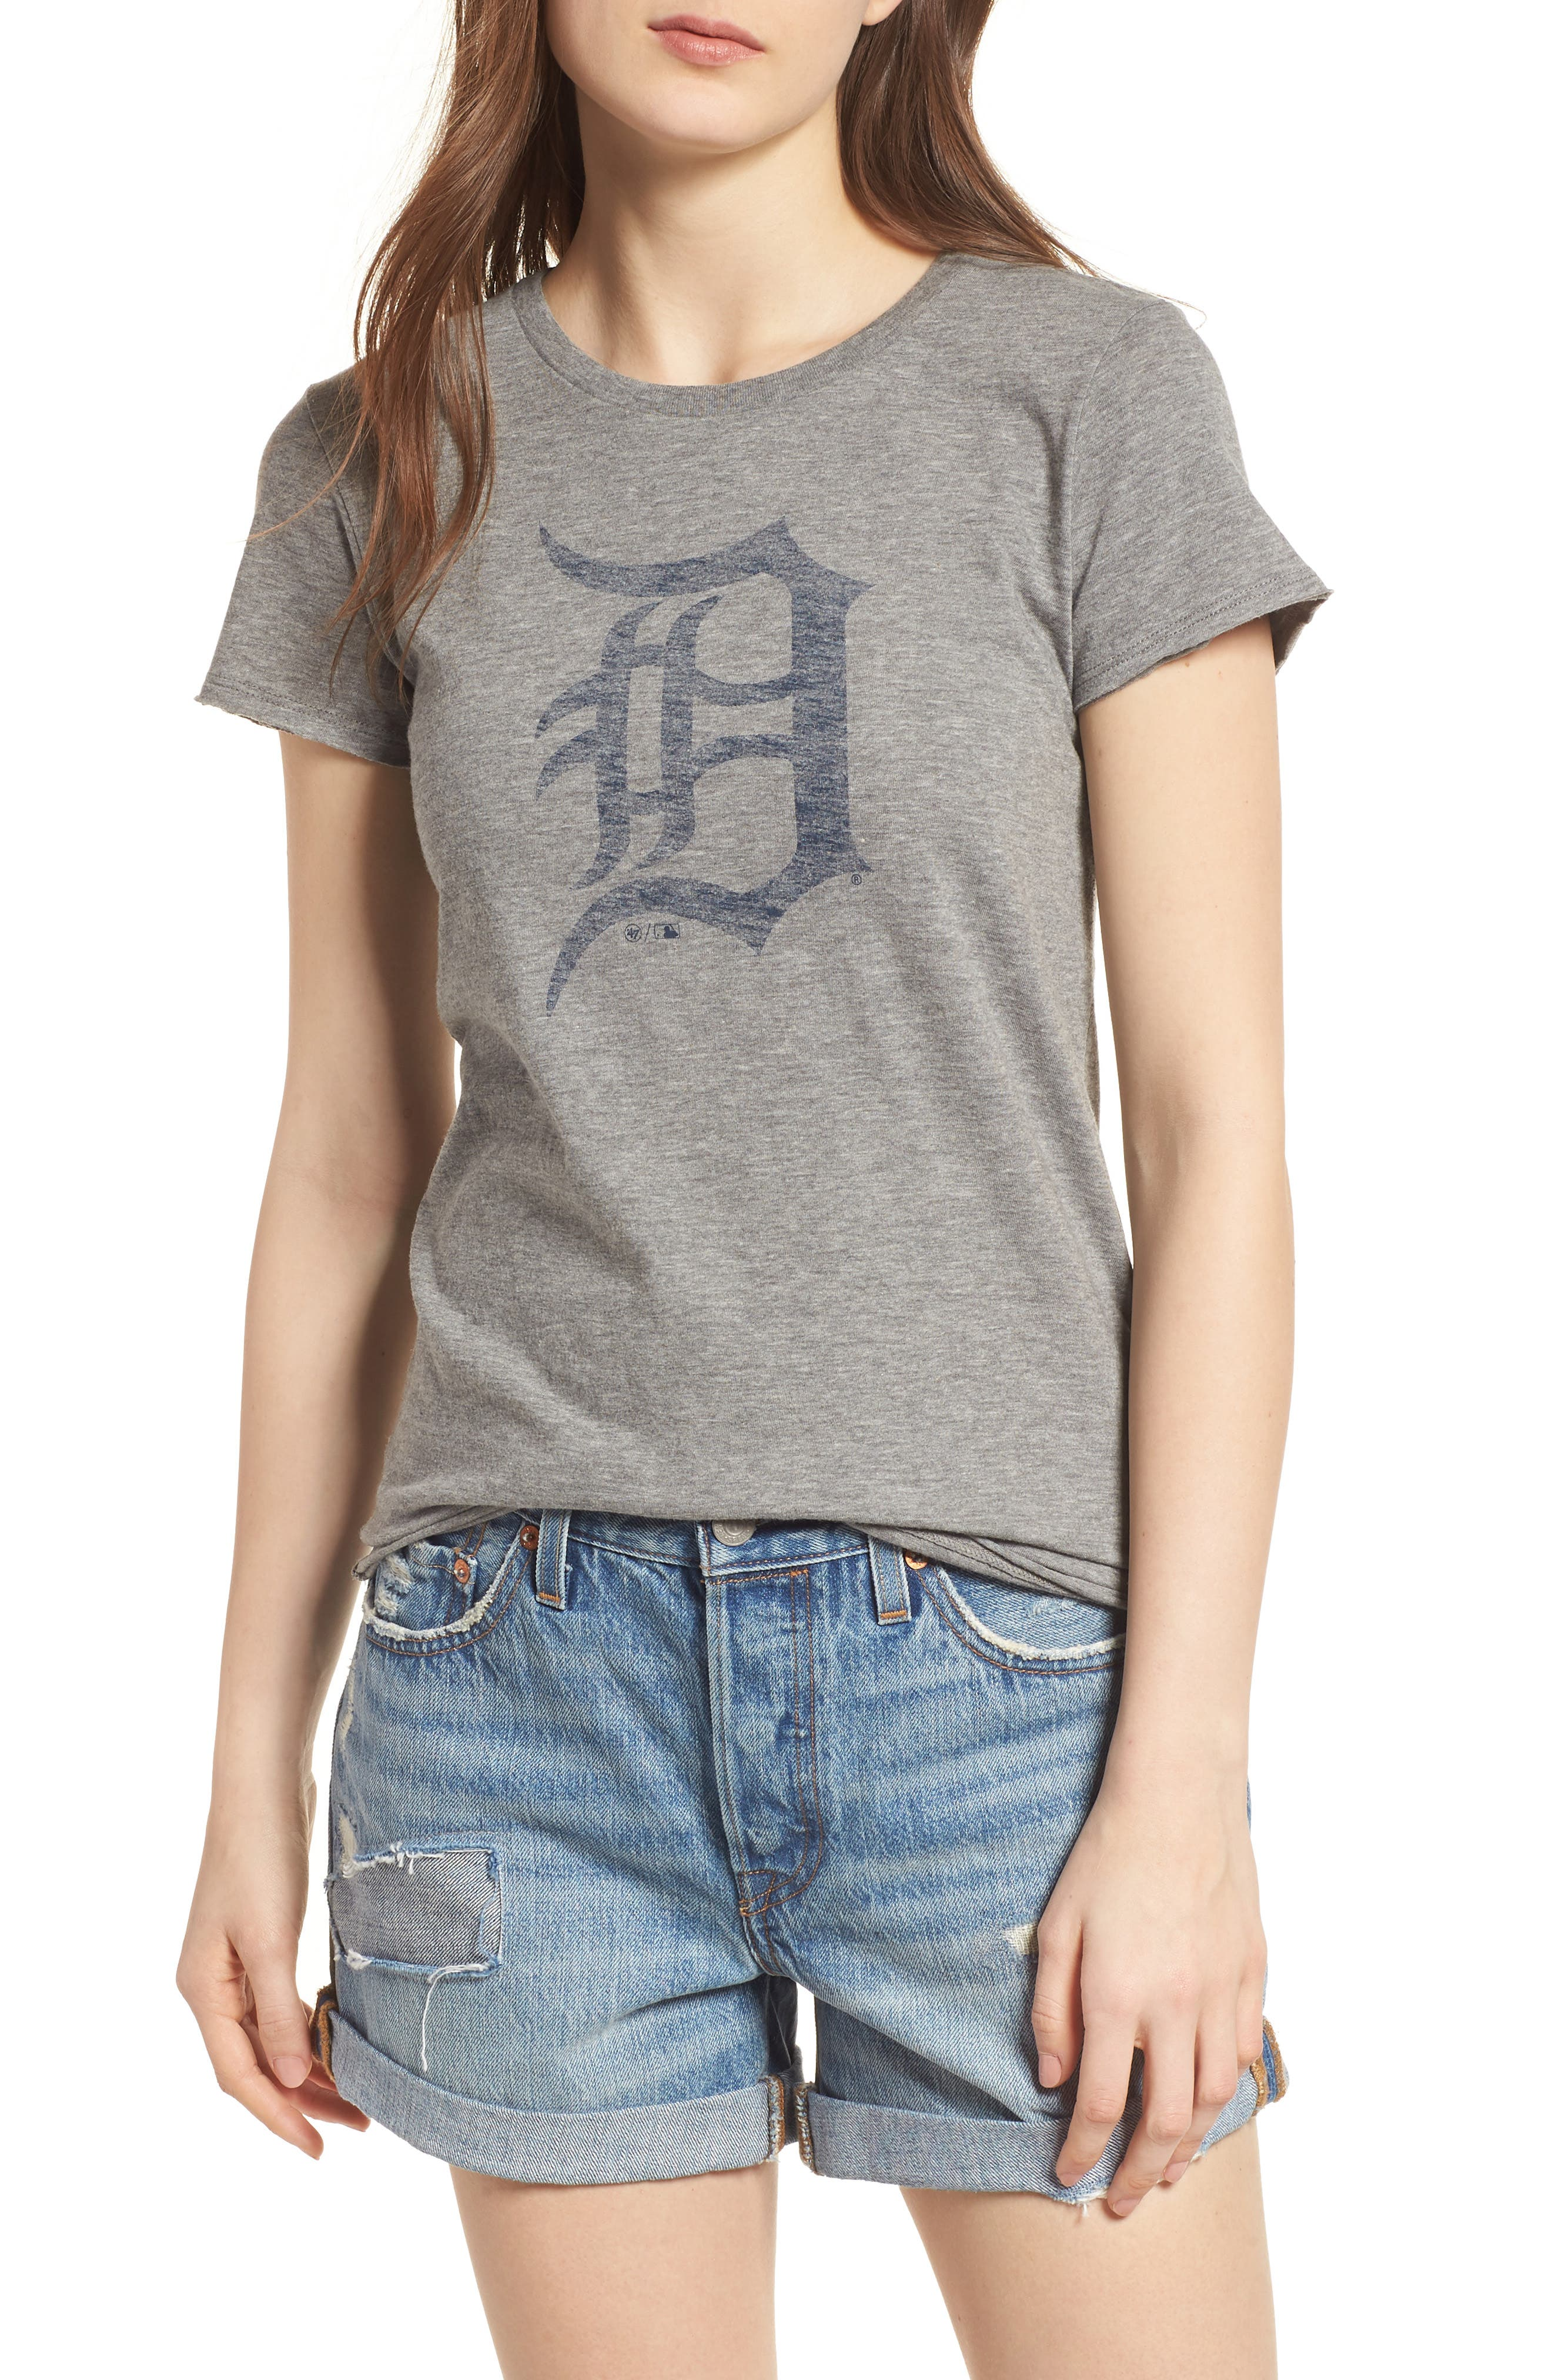 Detroit Tigers Fader Letter Tee,                             Main thumbnail 1, color,                             Slate Grey